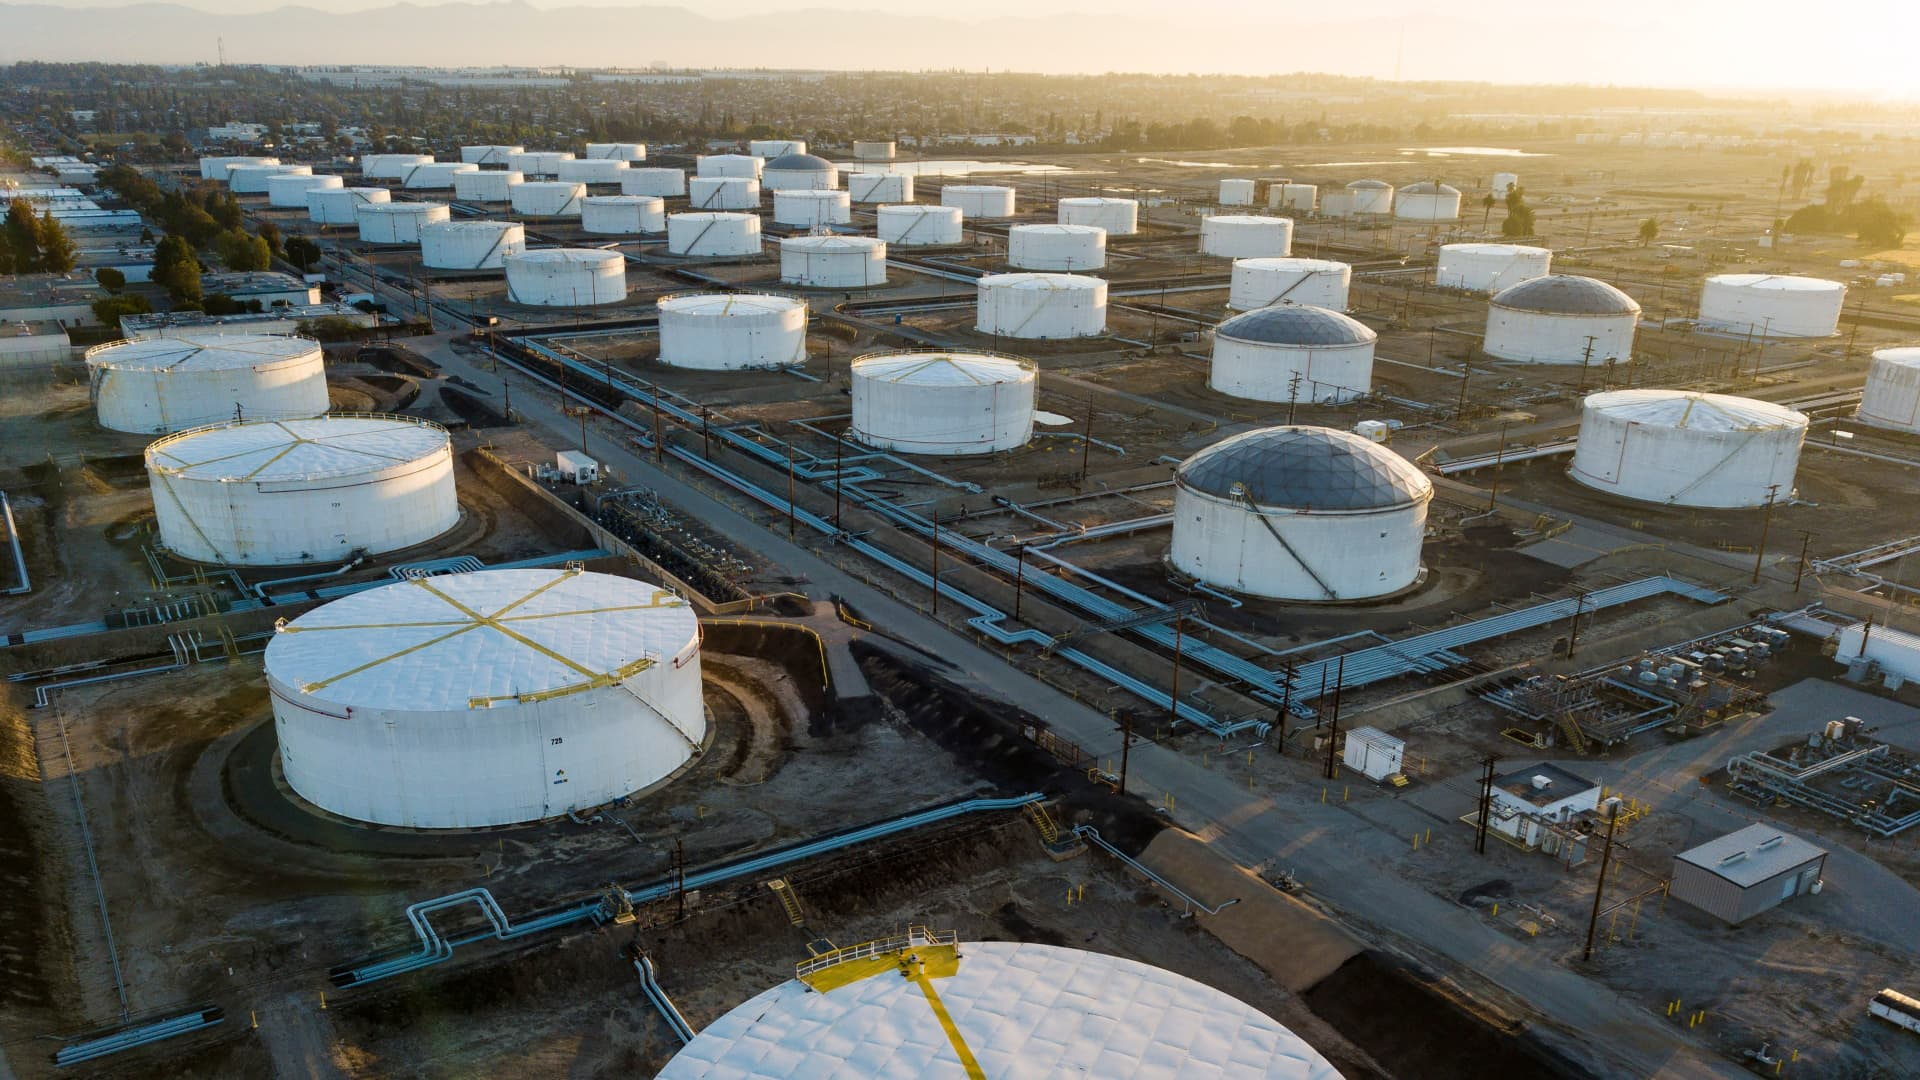 Oil-storage tanks are seen from above in Carson, California, April 25, 2020 after the price for crude plunged into negative territory for the first time in history on April 20.